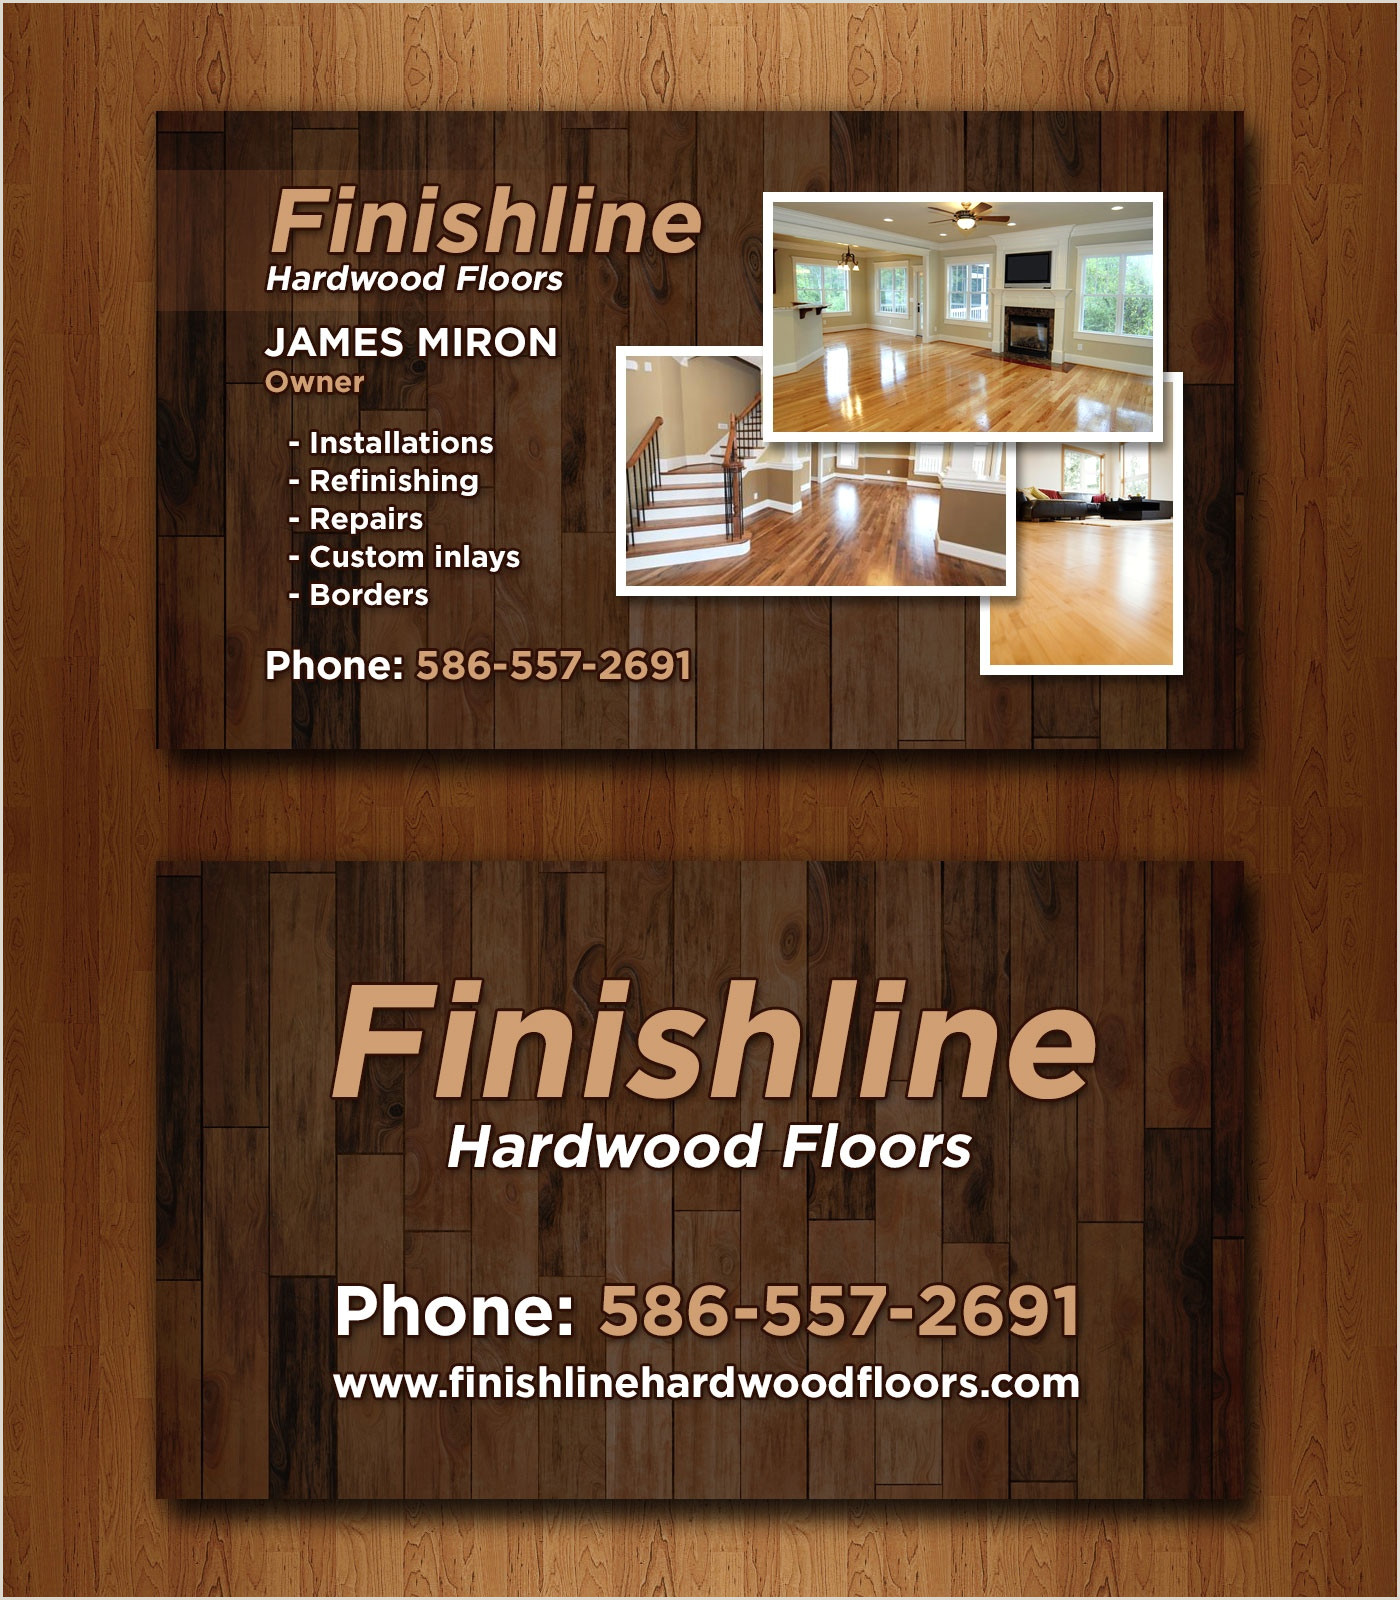 High Quality Unique Paper Business Cards 14 Popular Hardwood Flooring Business Card Template